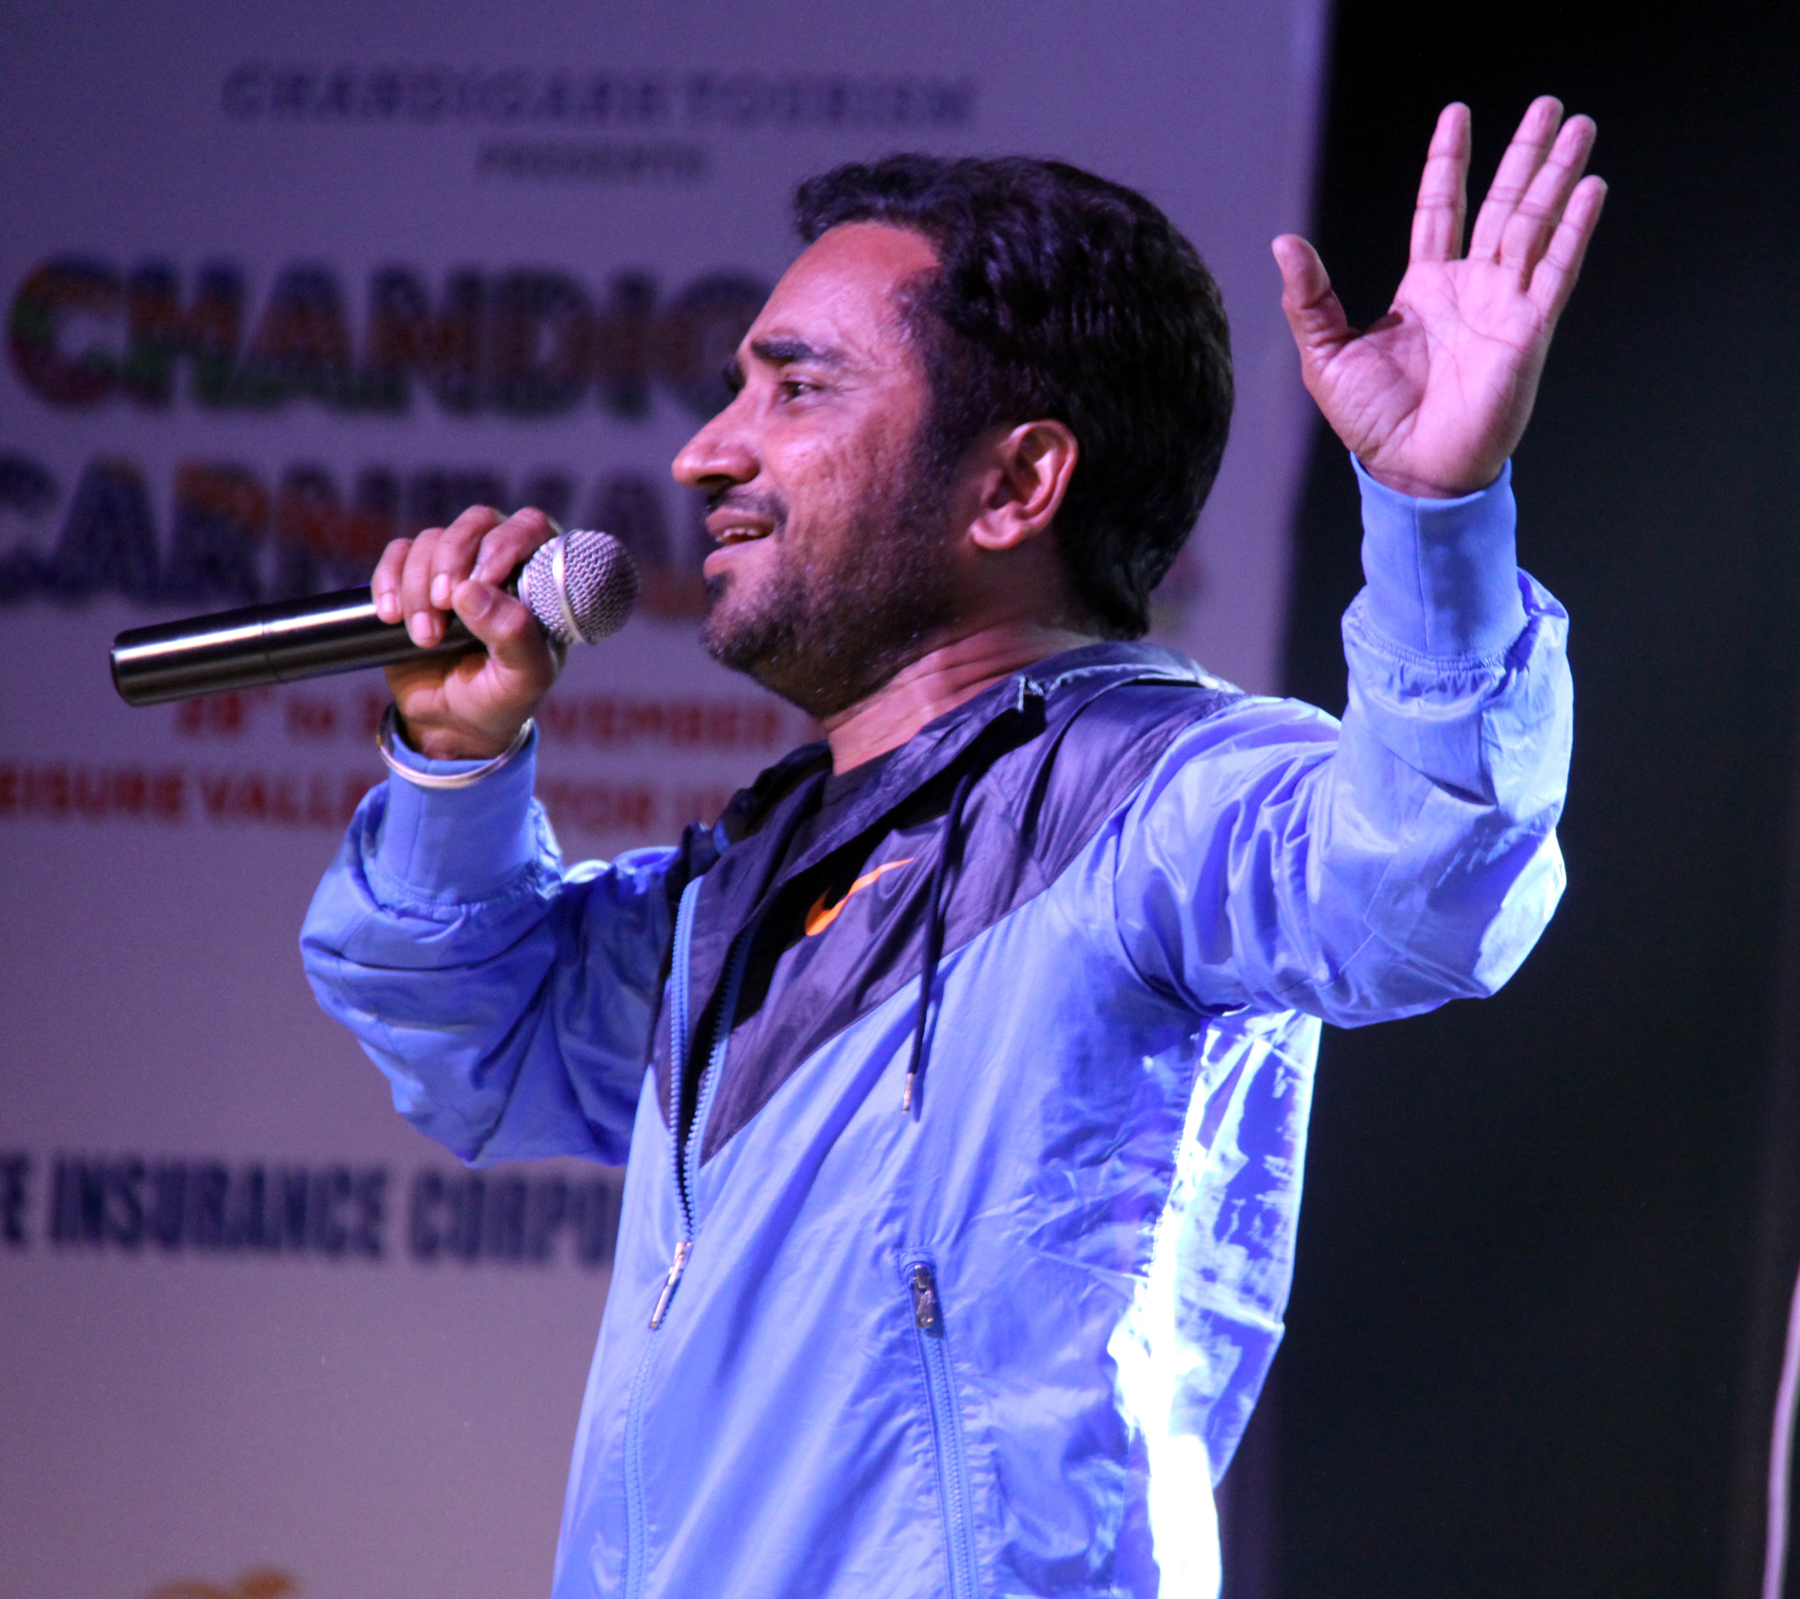 Rana Ranbir performing on the Ist day of the Chandigarh Carnival-2014 at Leisure Valley, Sector-10, Chandigarh on Friday, November 28, 2014.